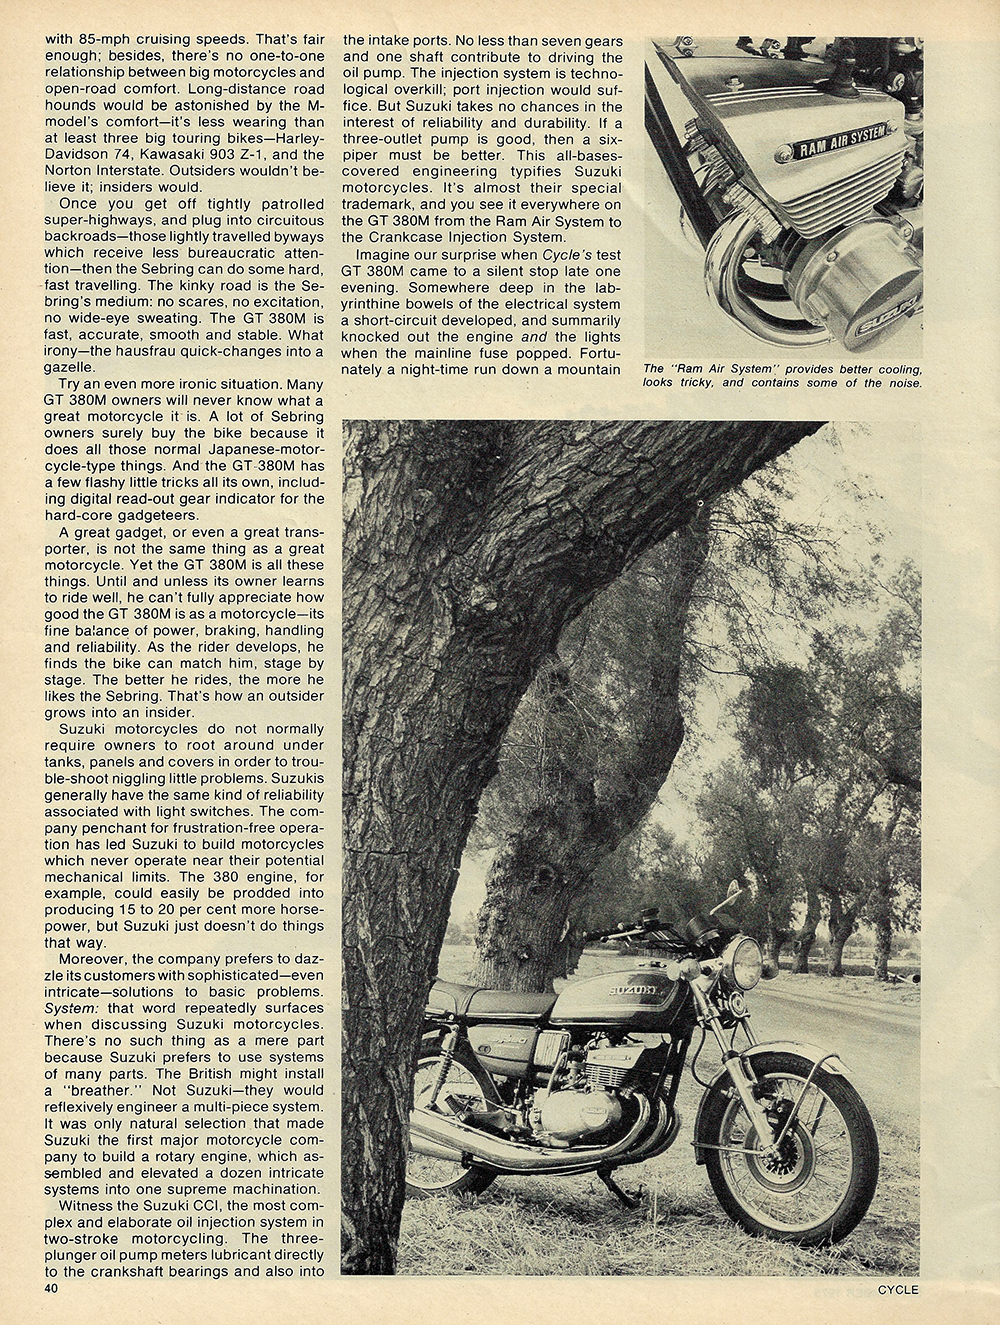 1975 Suzuki GT380M road test 3.JPG